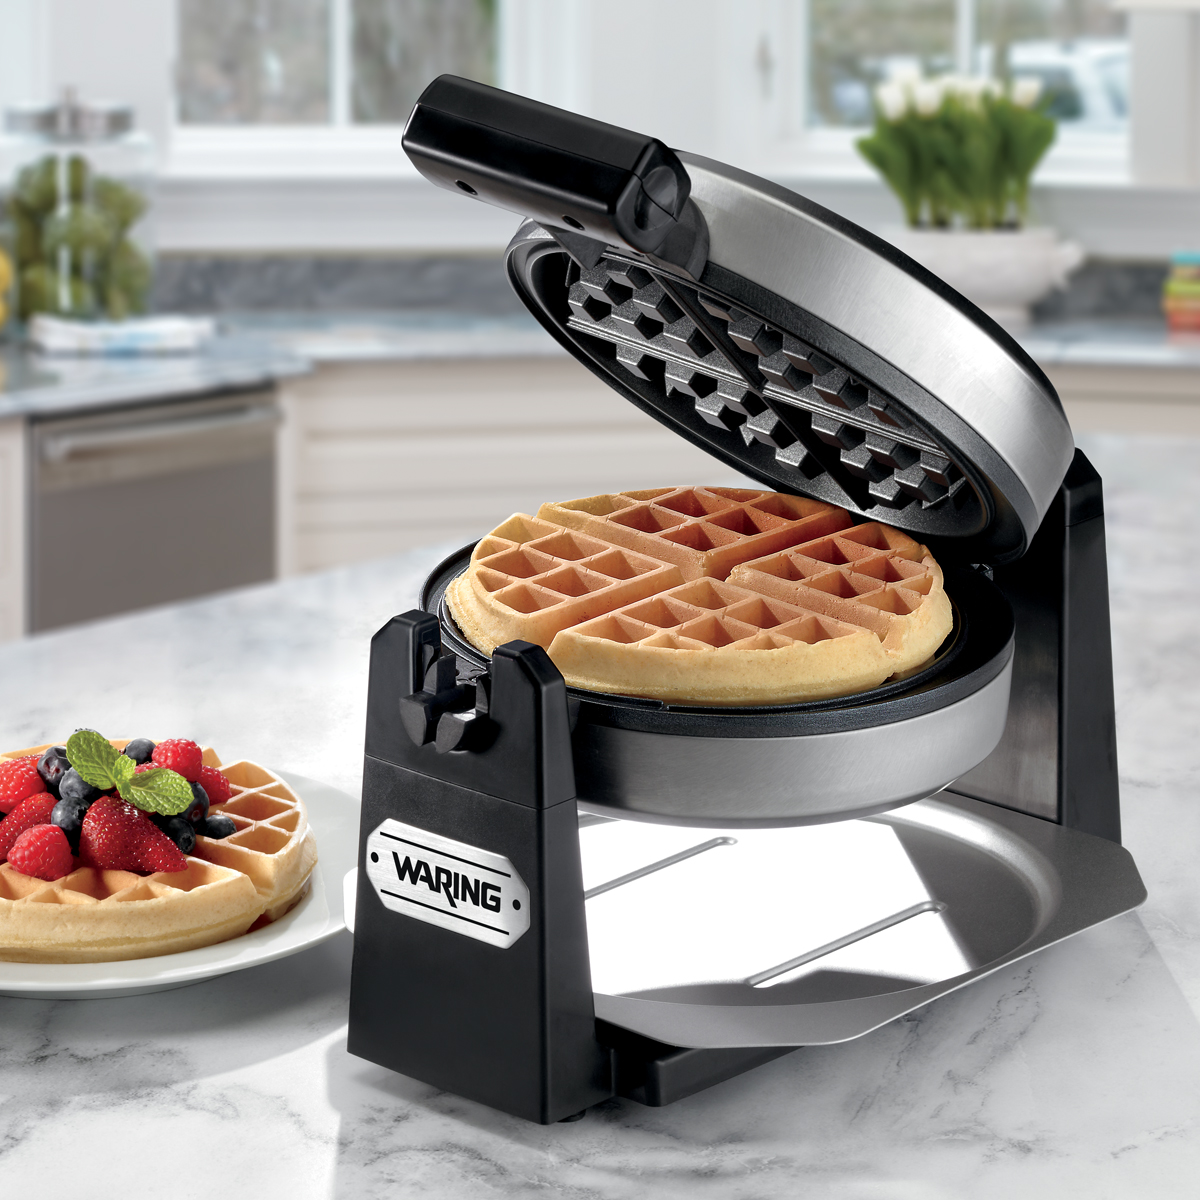 Kitchen Gadget Gift 6 Kitchen Gadget Gifts For The Foodie In Your Family Chick Fil A